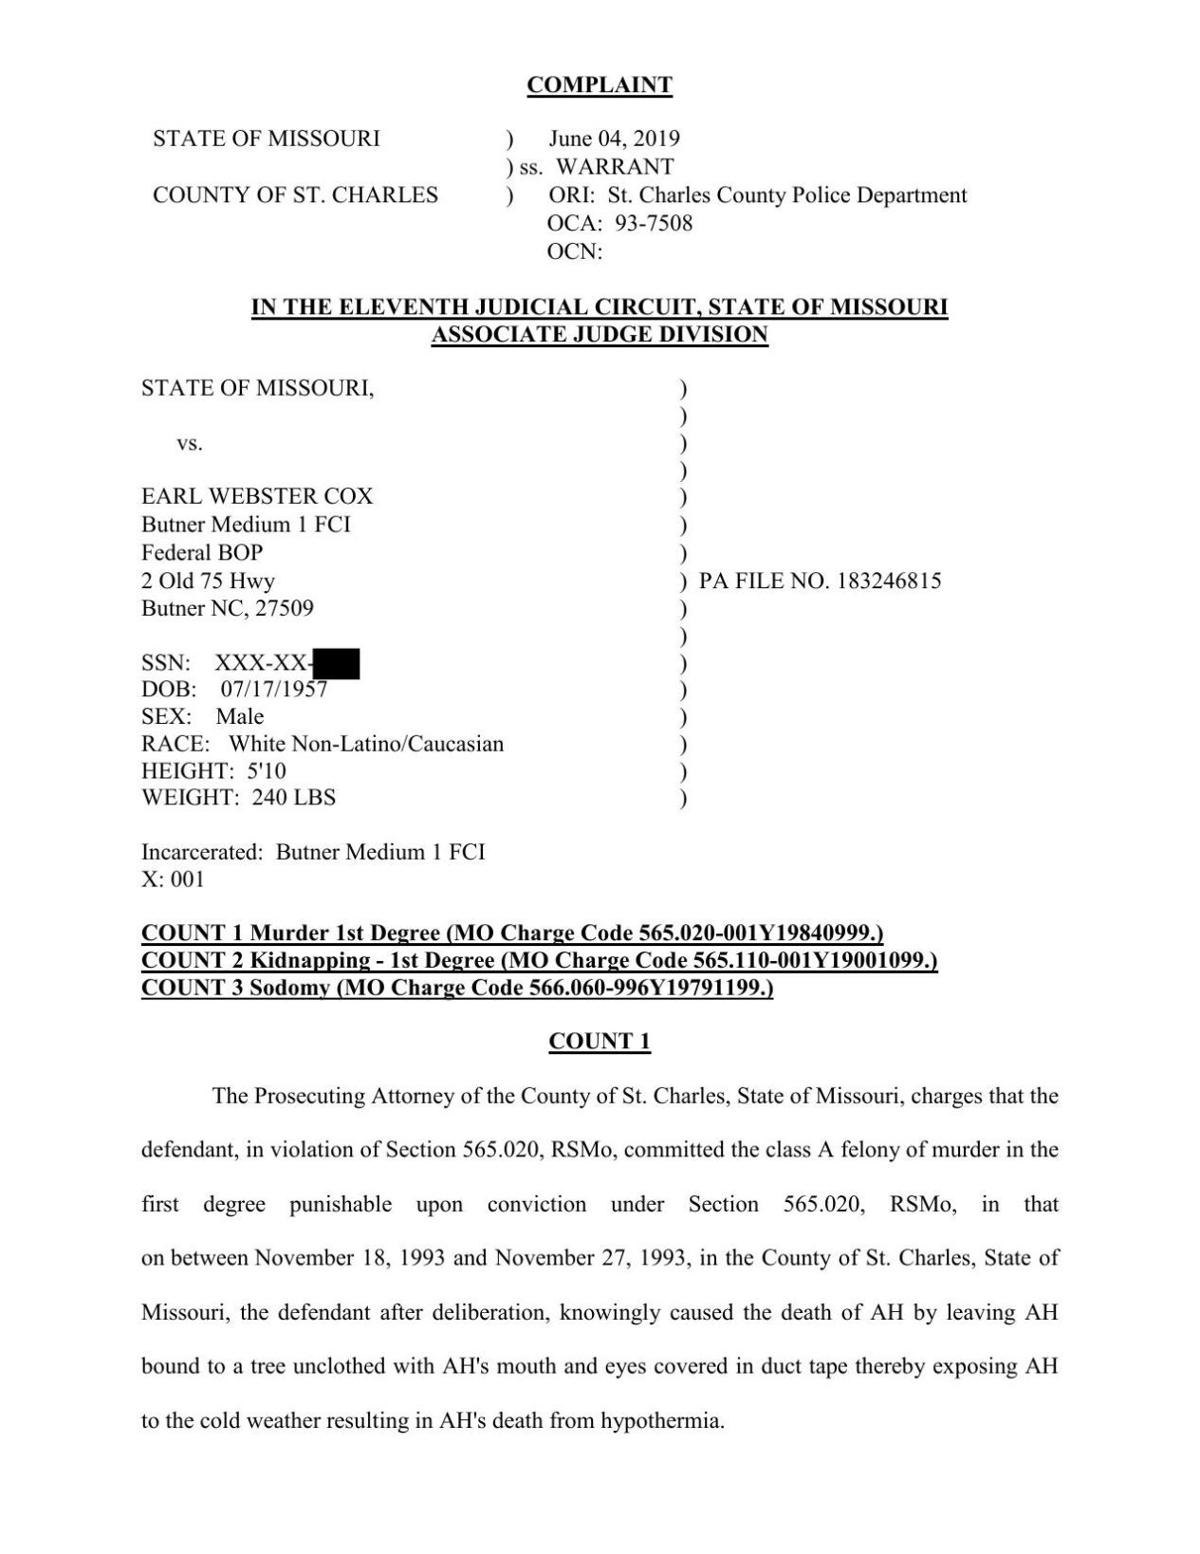 Read the felony complaint filed against Earl Webster Cox in St. Charles County